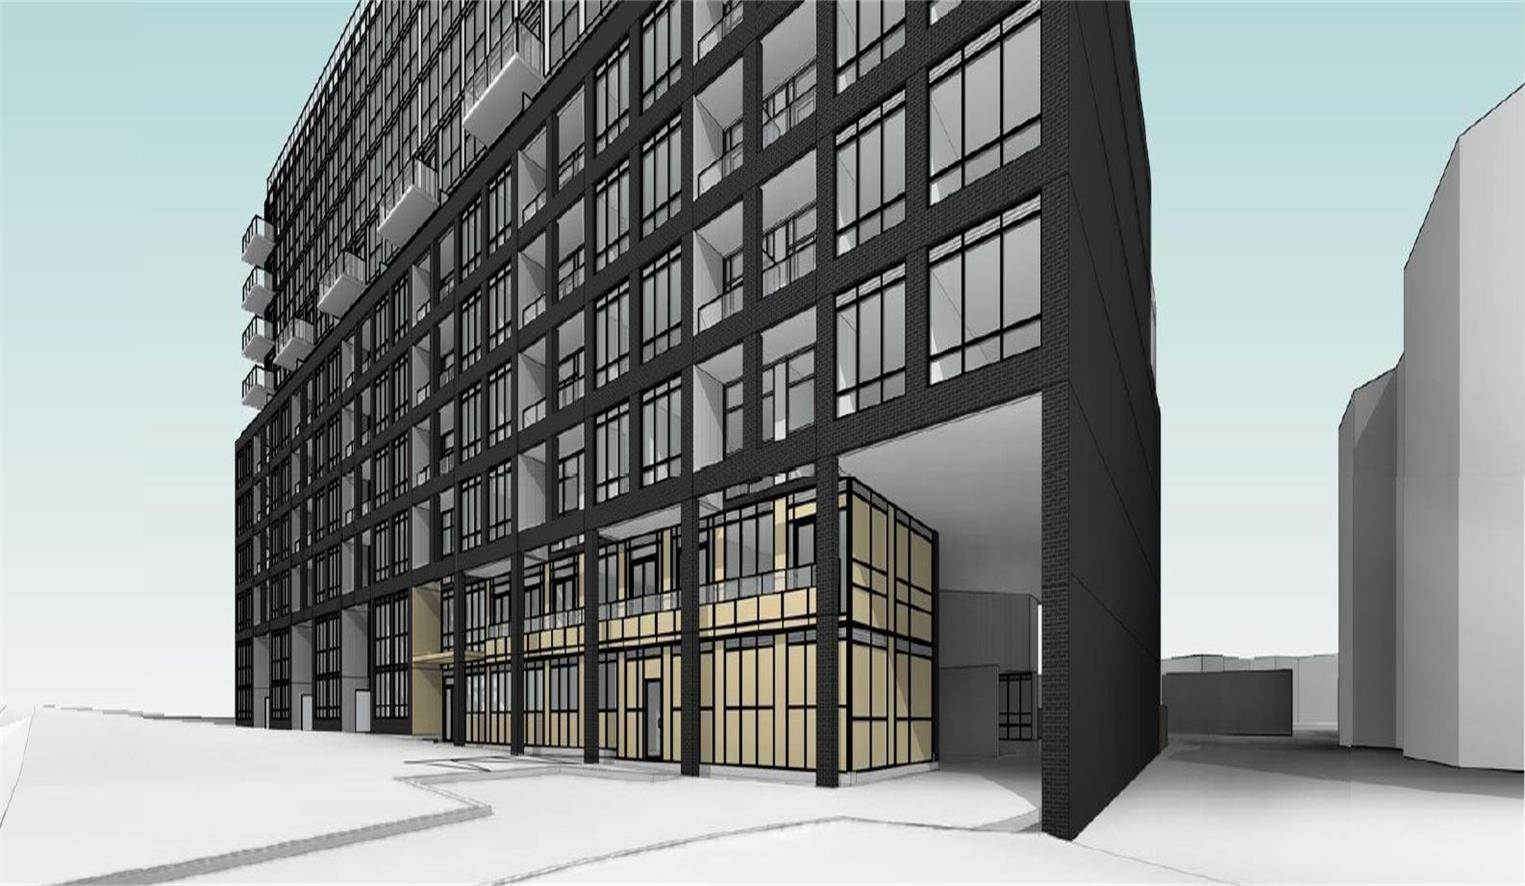 2020_09_29_11_39_24_2151kingstonroadcondos_altreedevelopments_rendering_exterior3